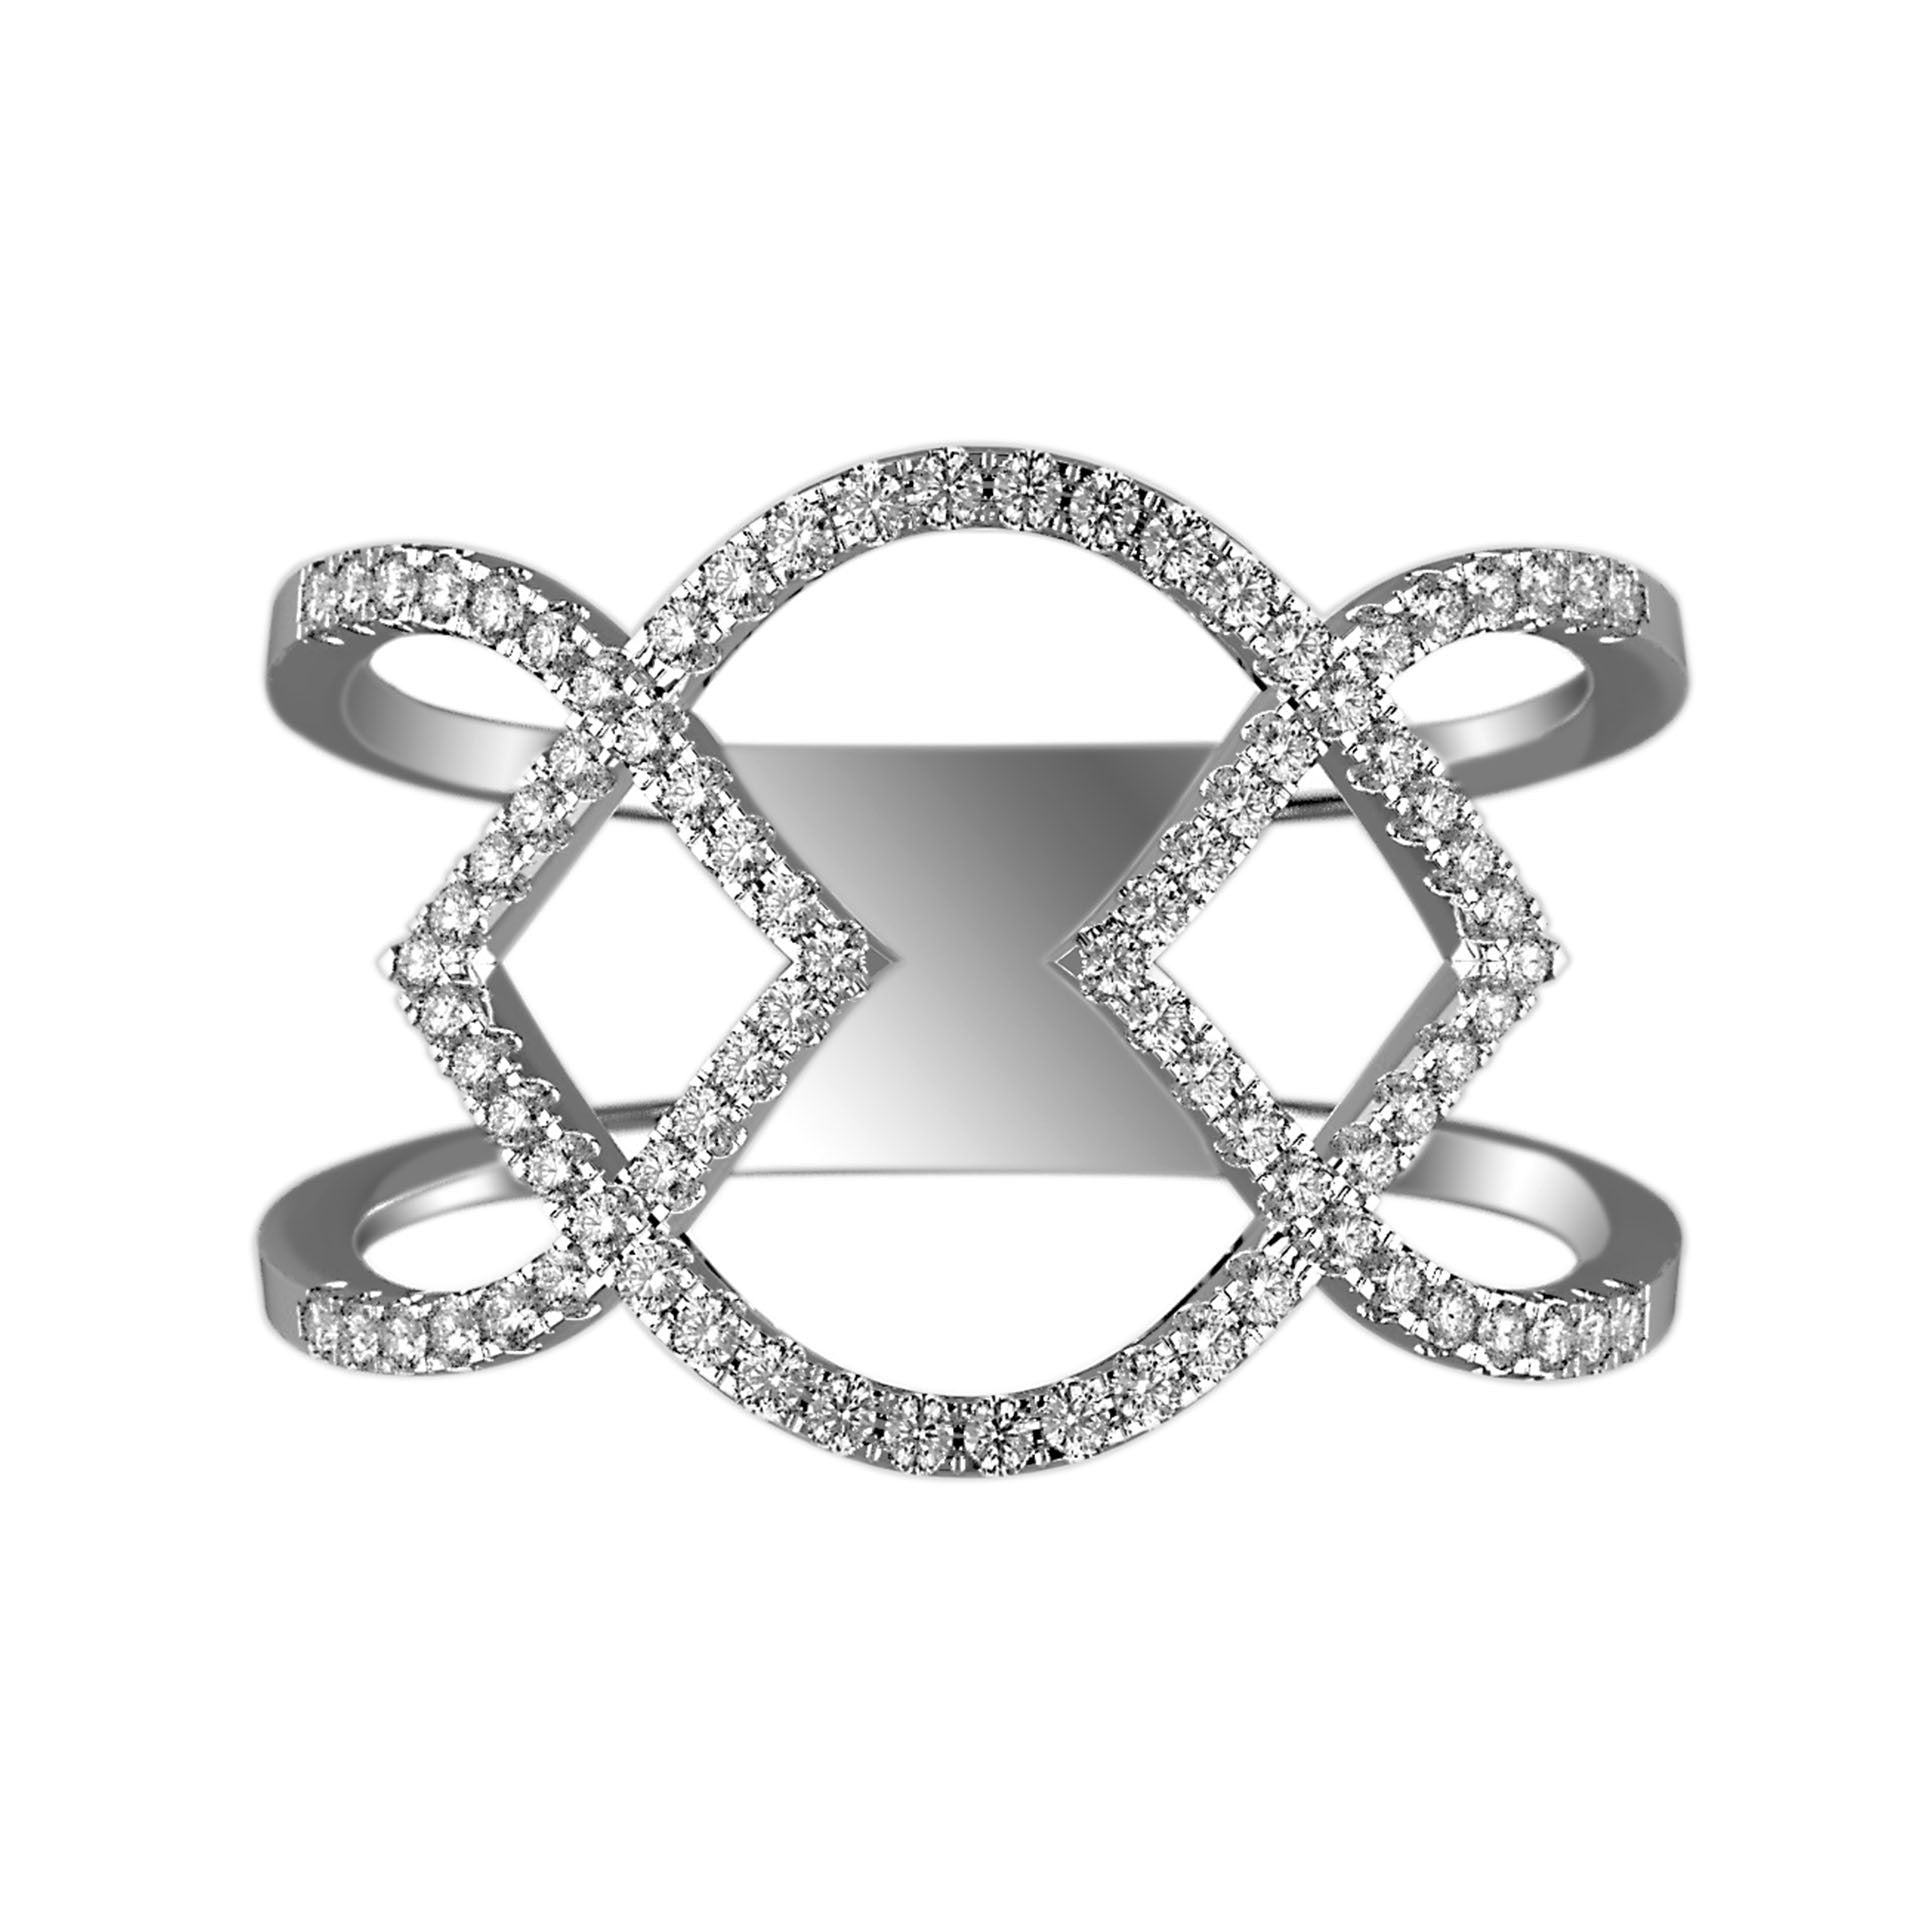 Crisscrossed Arrows Diamond Cutout Ring - KARP Jewellery